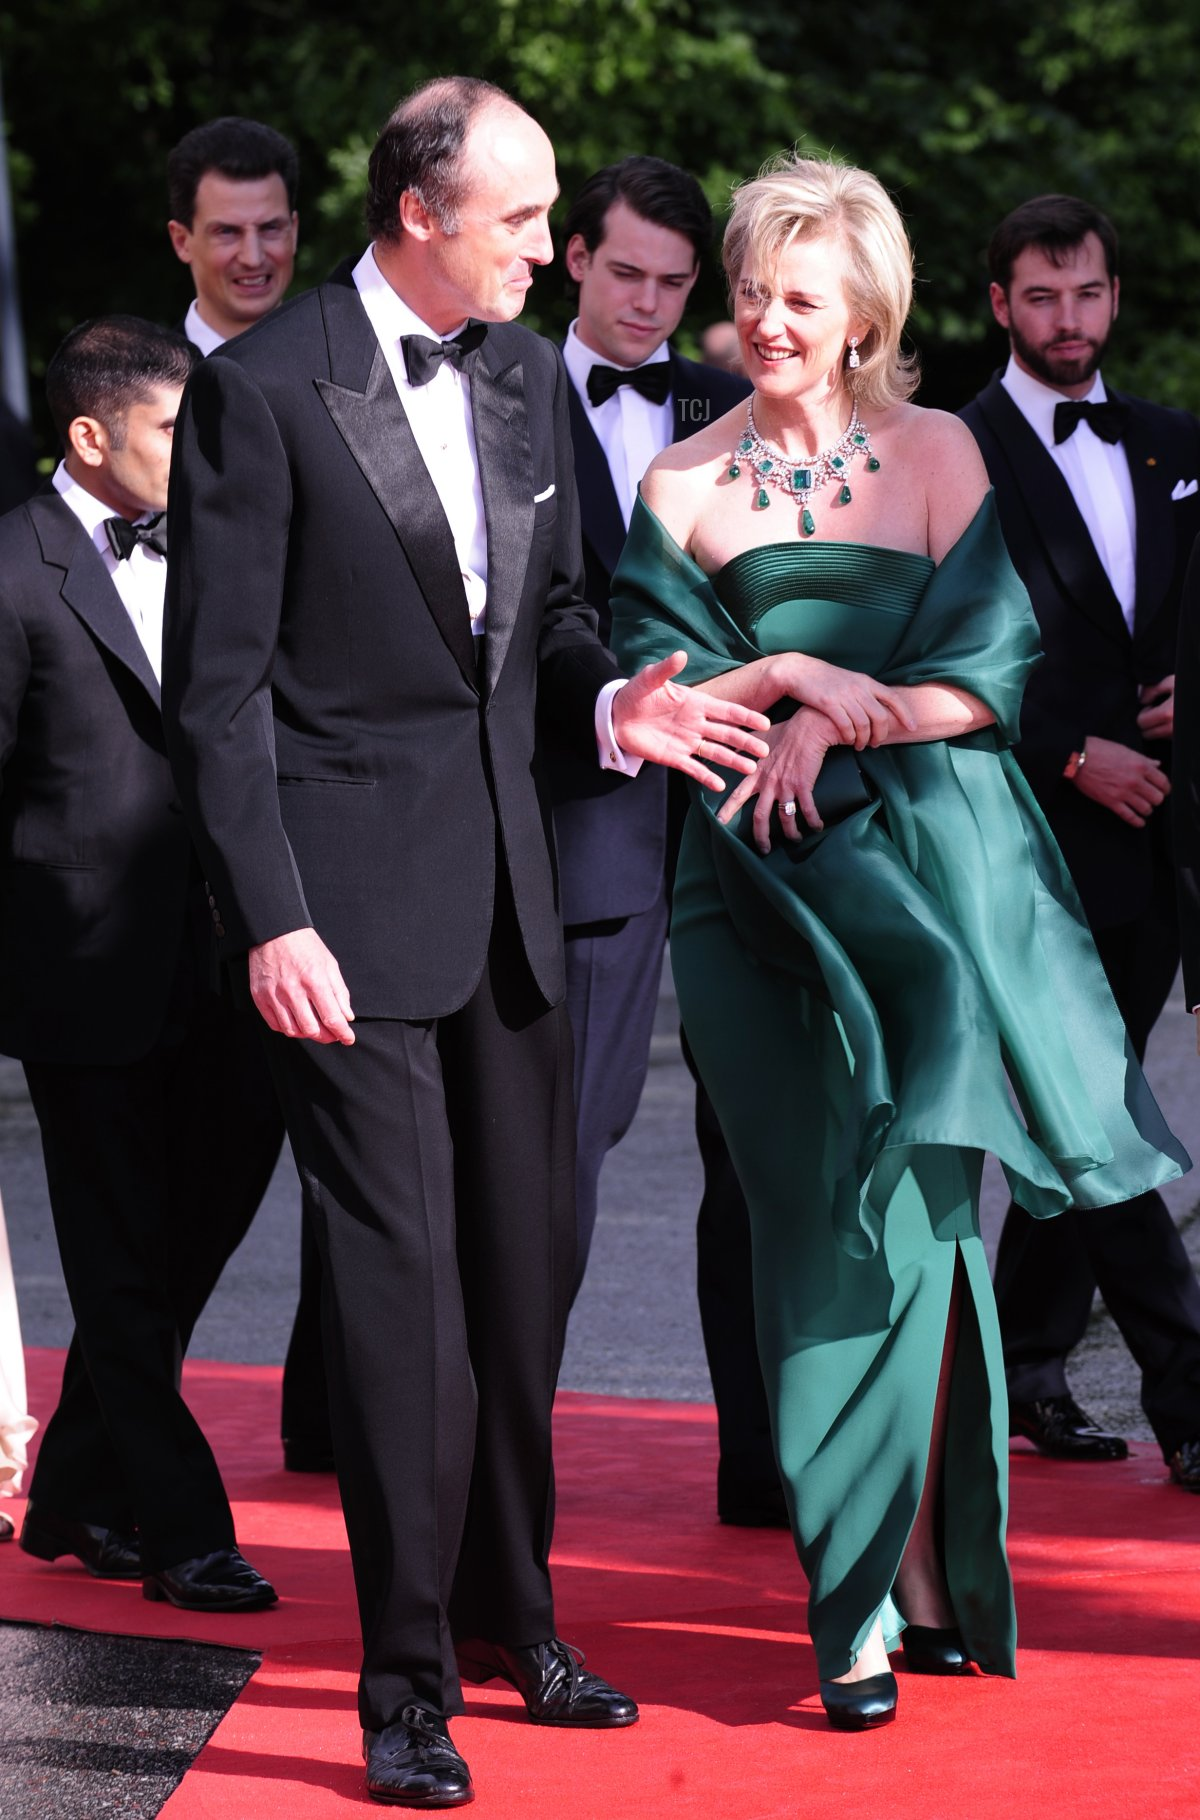 Prince Lorenz (L) and Princess Astrid of Belgium arrive at the Eric Ericson Hall of Skeppsholmen in Stockholm on June 18, 2010 prior to a gala dinner presented by the local government